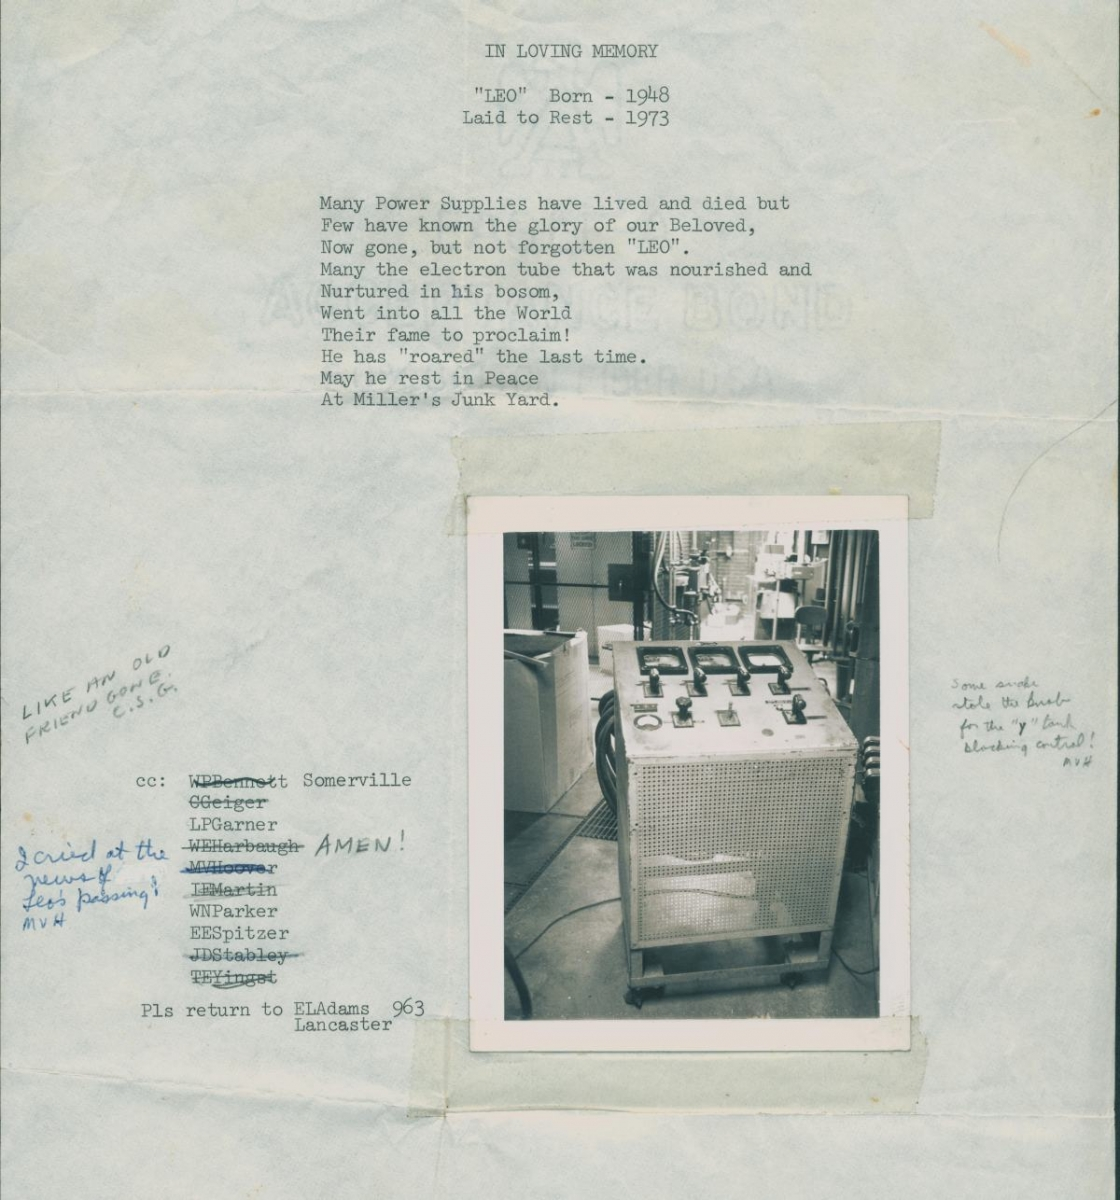 Memorial page of broken equipment with a photograph of the machine